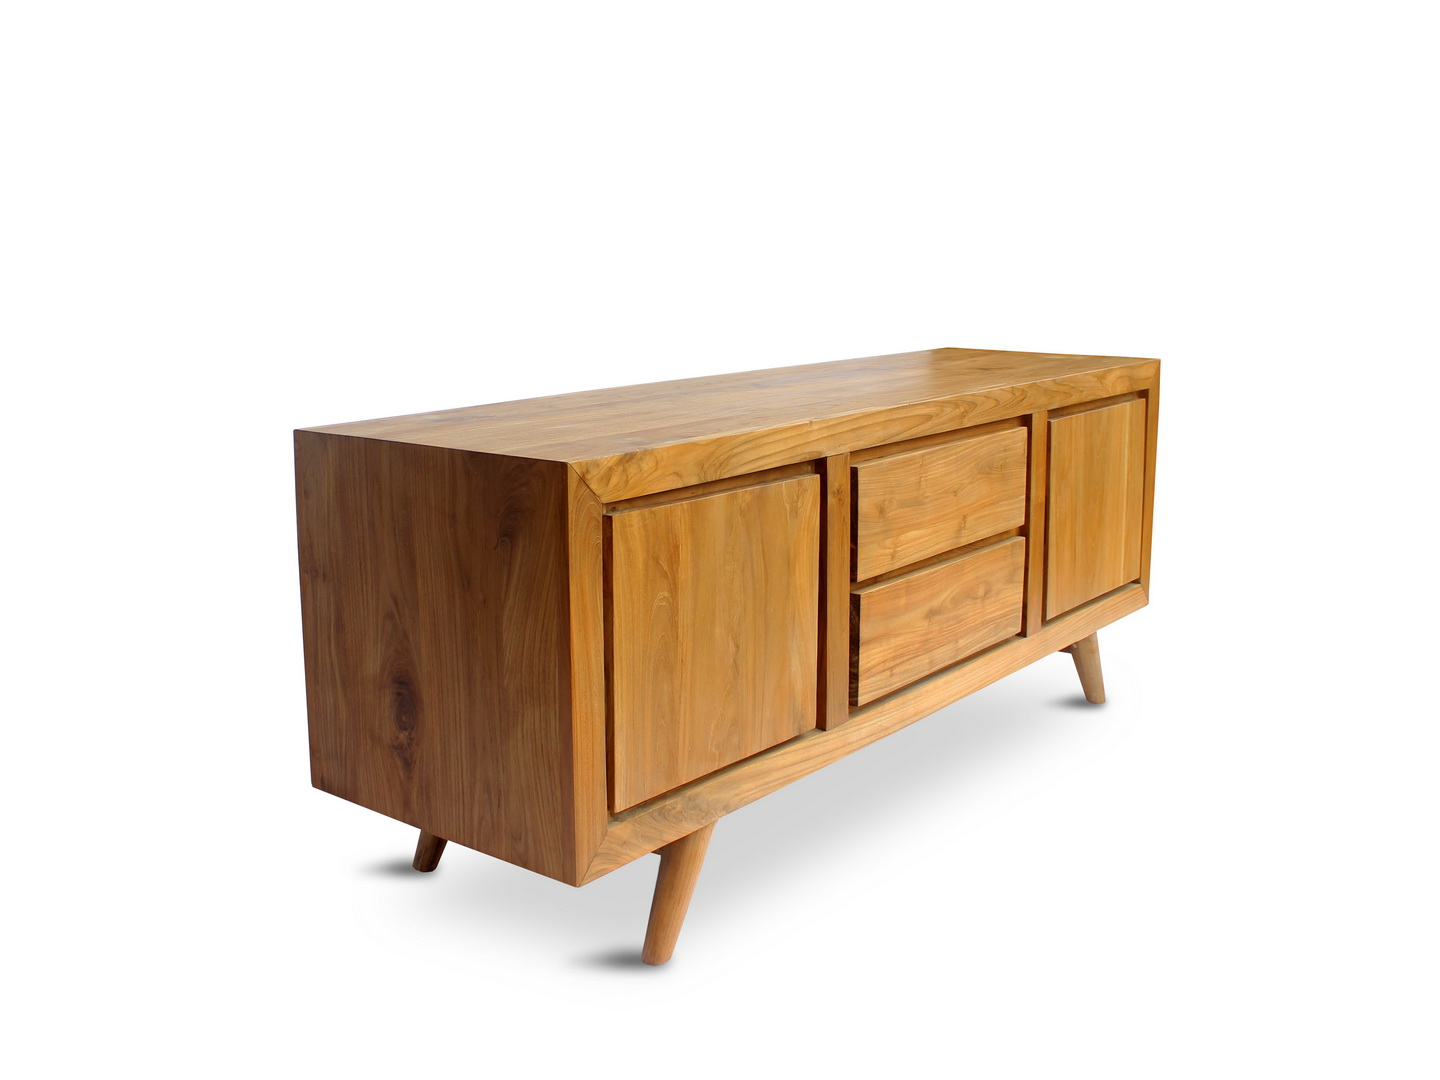 Otterlake Teakwood Cabinet Yuni Bali Furniture Bali Furniture Manufacturer And Exporter